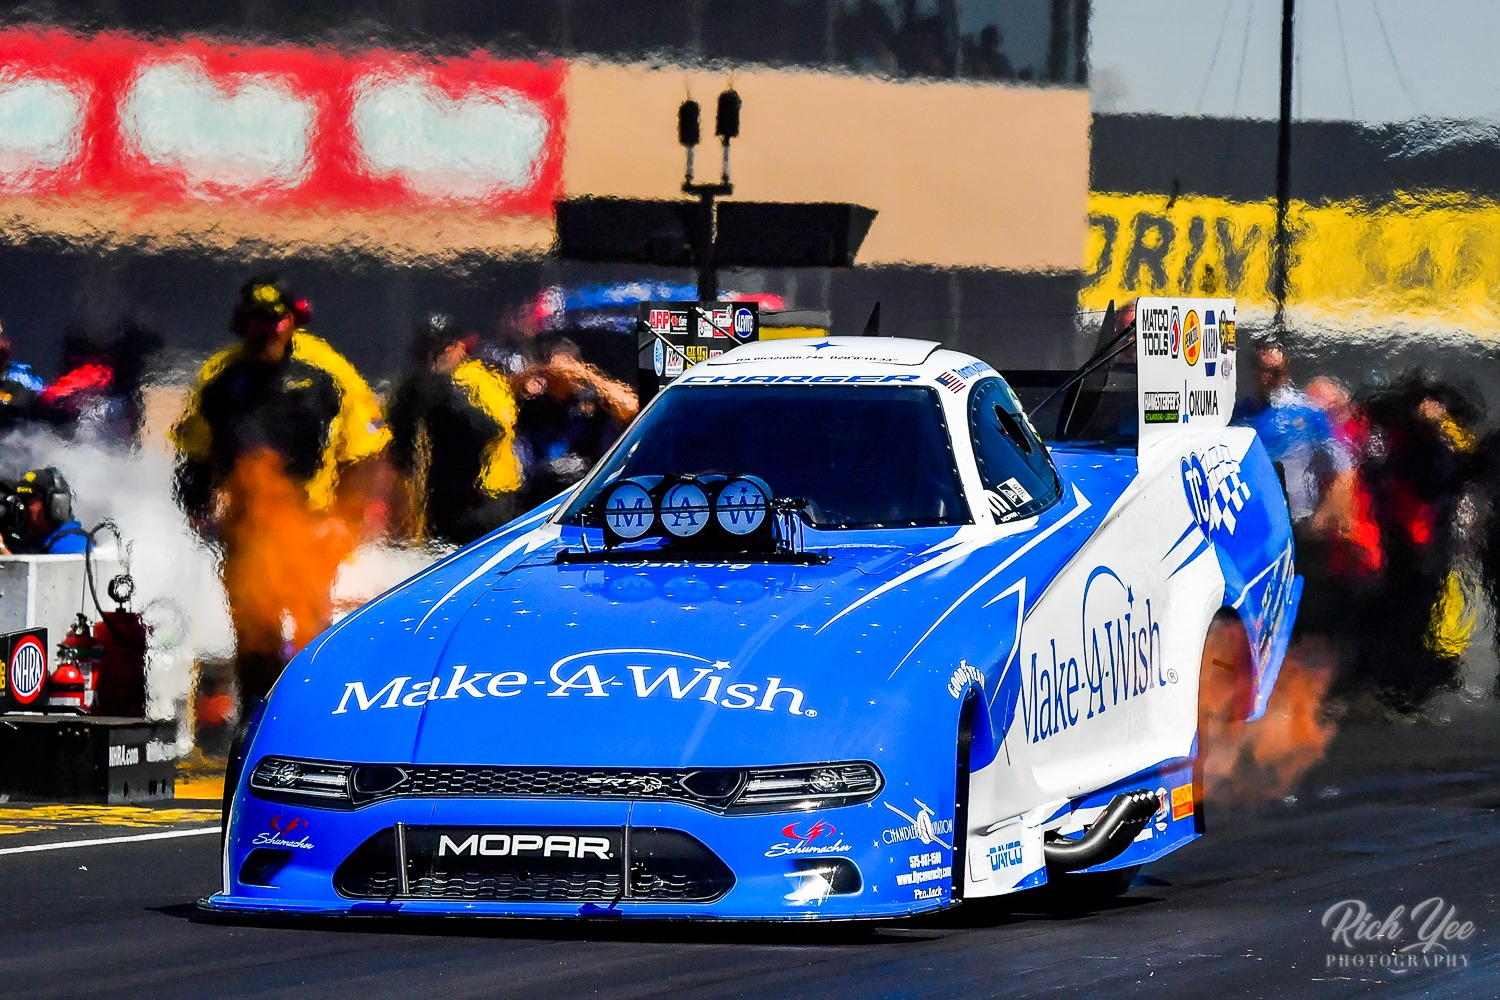 Copy of The NHRA Sonoma Nationals, Sonoma Raceway, July 26-28